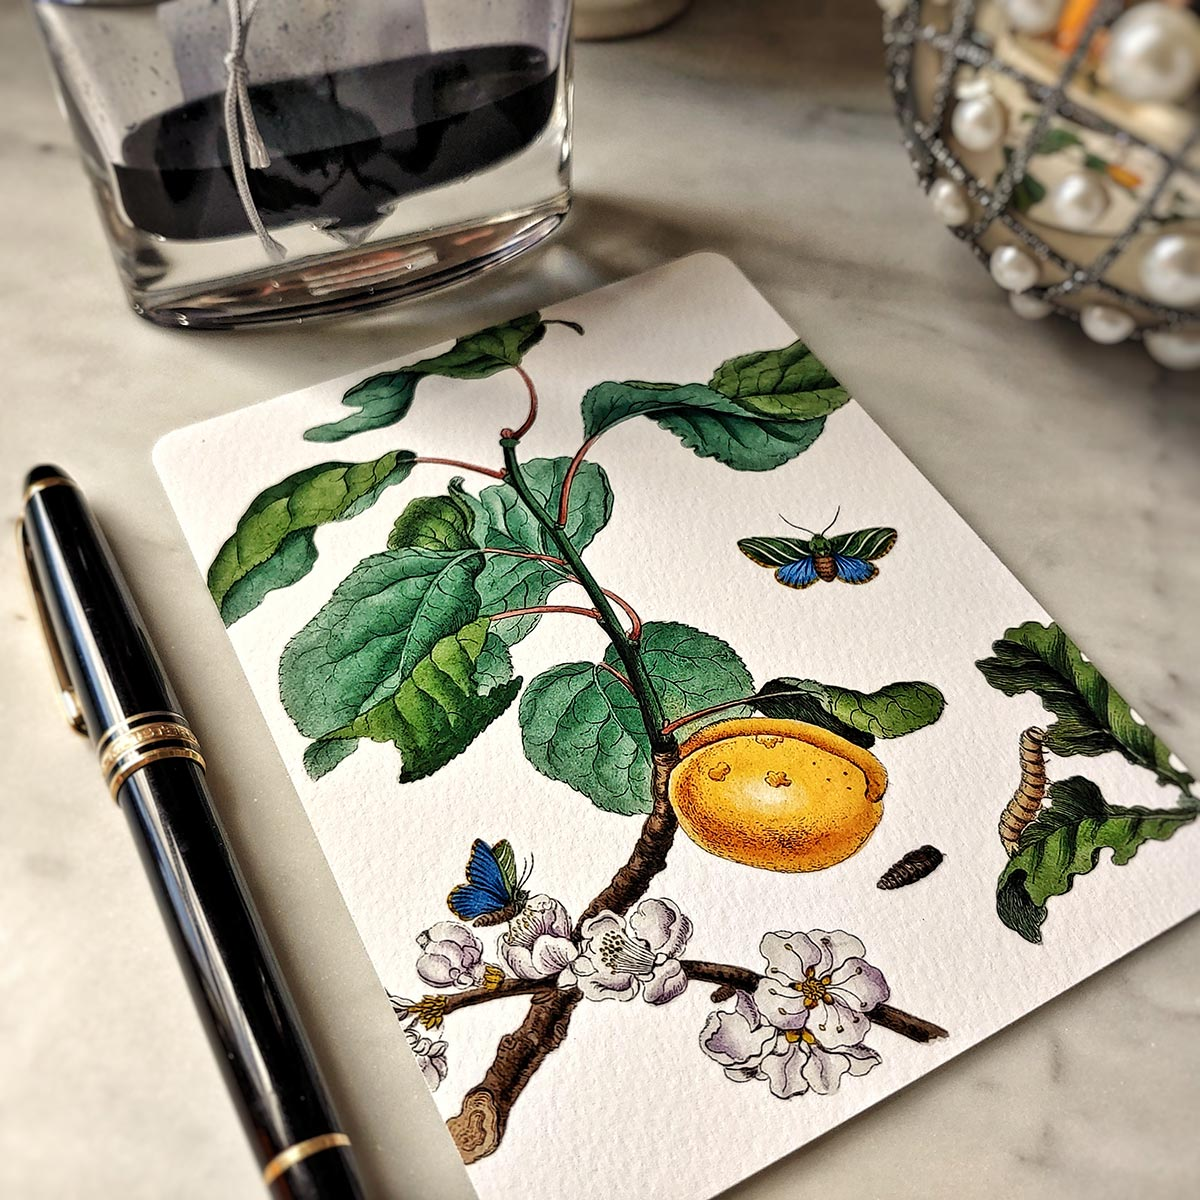 The Punctilious Mr. P's 'signs of spring' note card pack featuring butterflies and yellow fruit